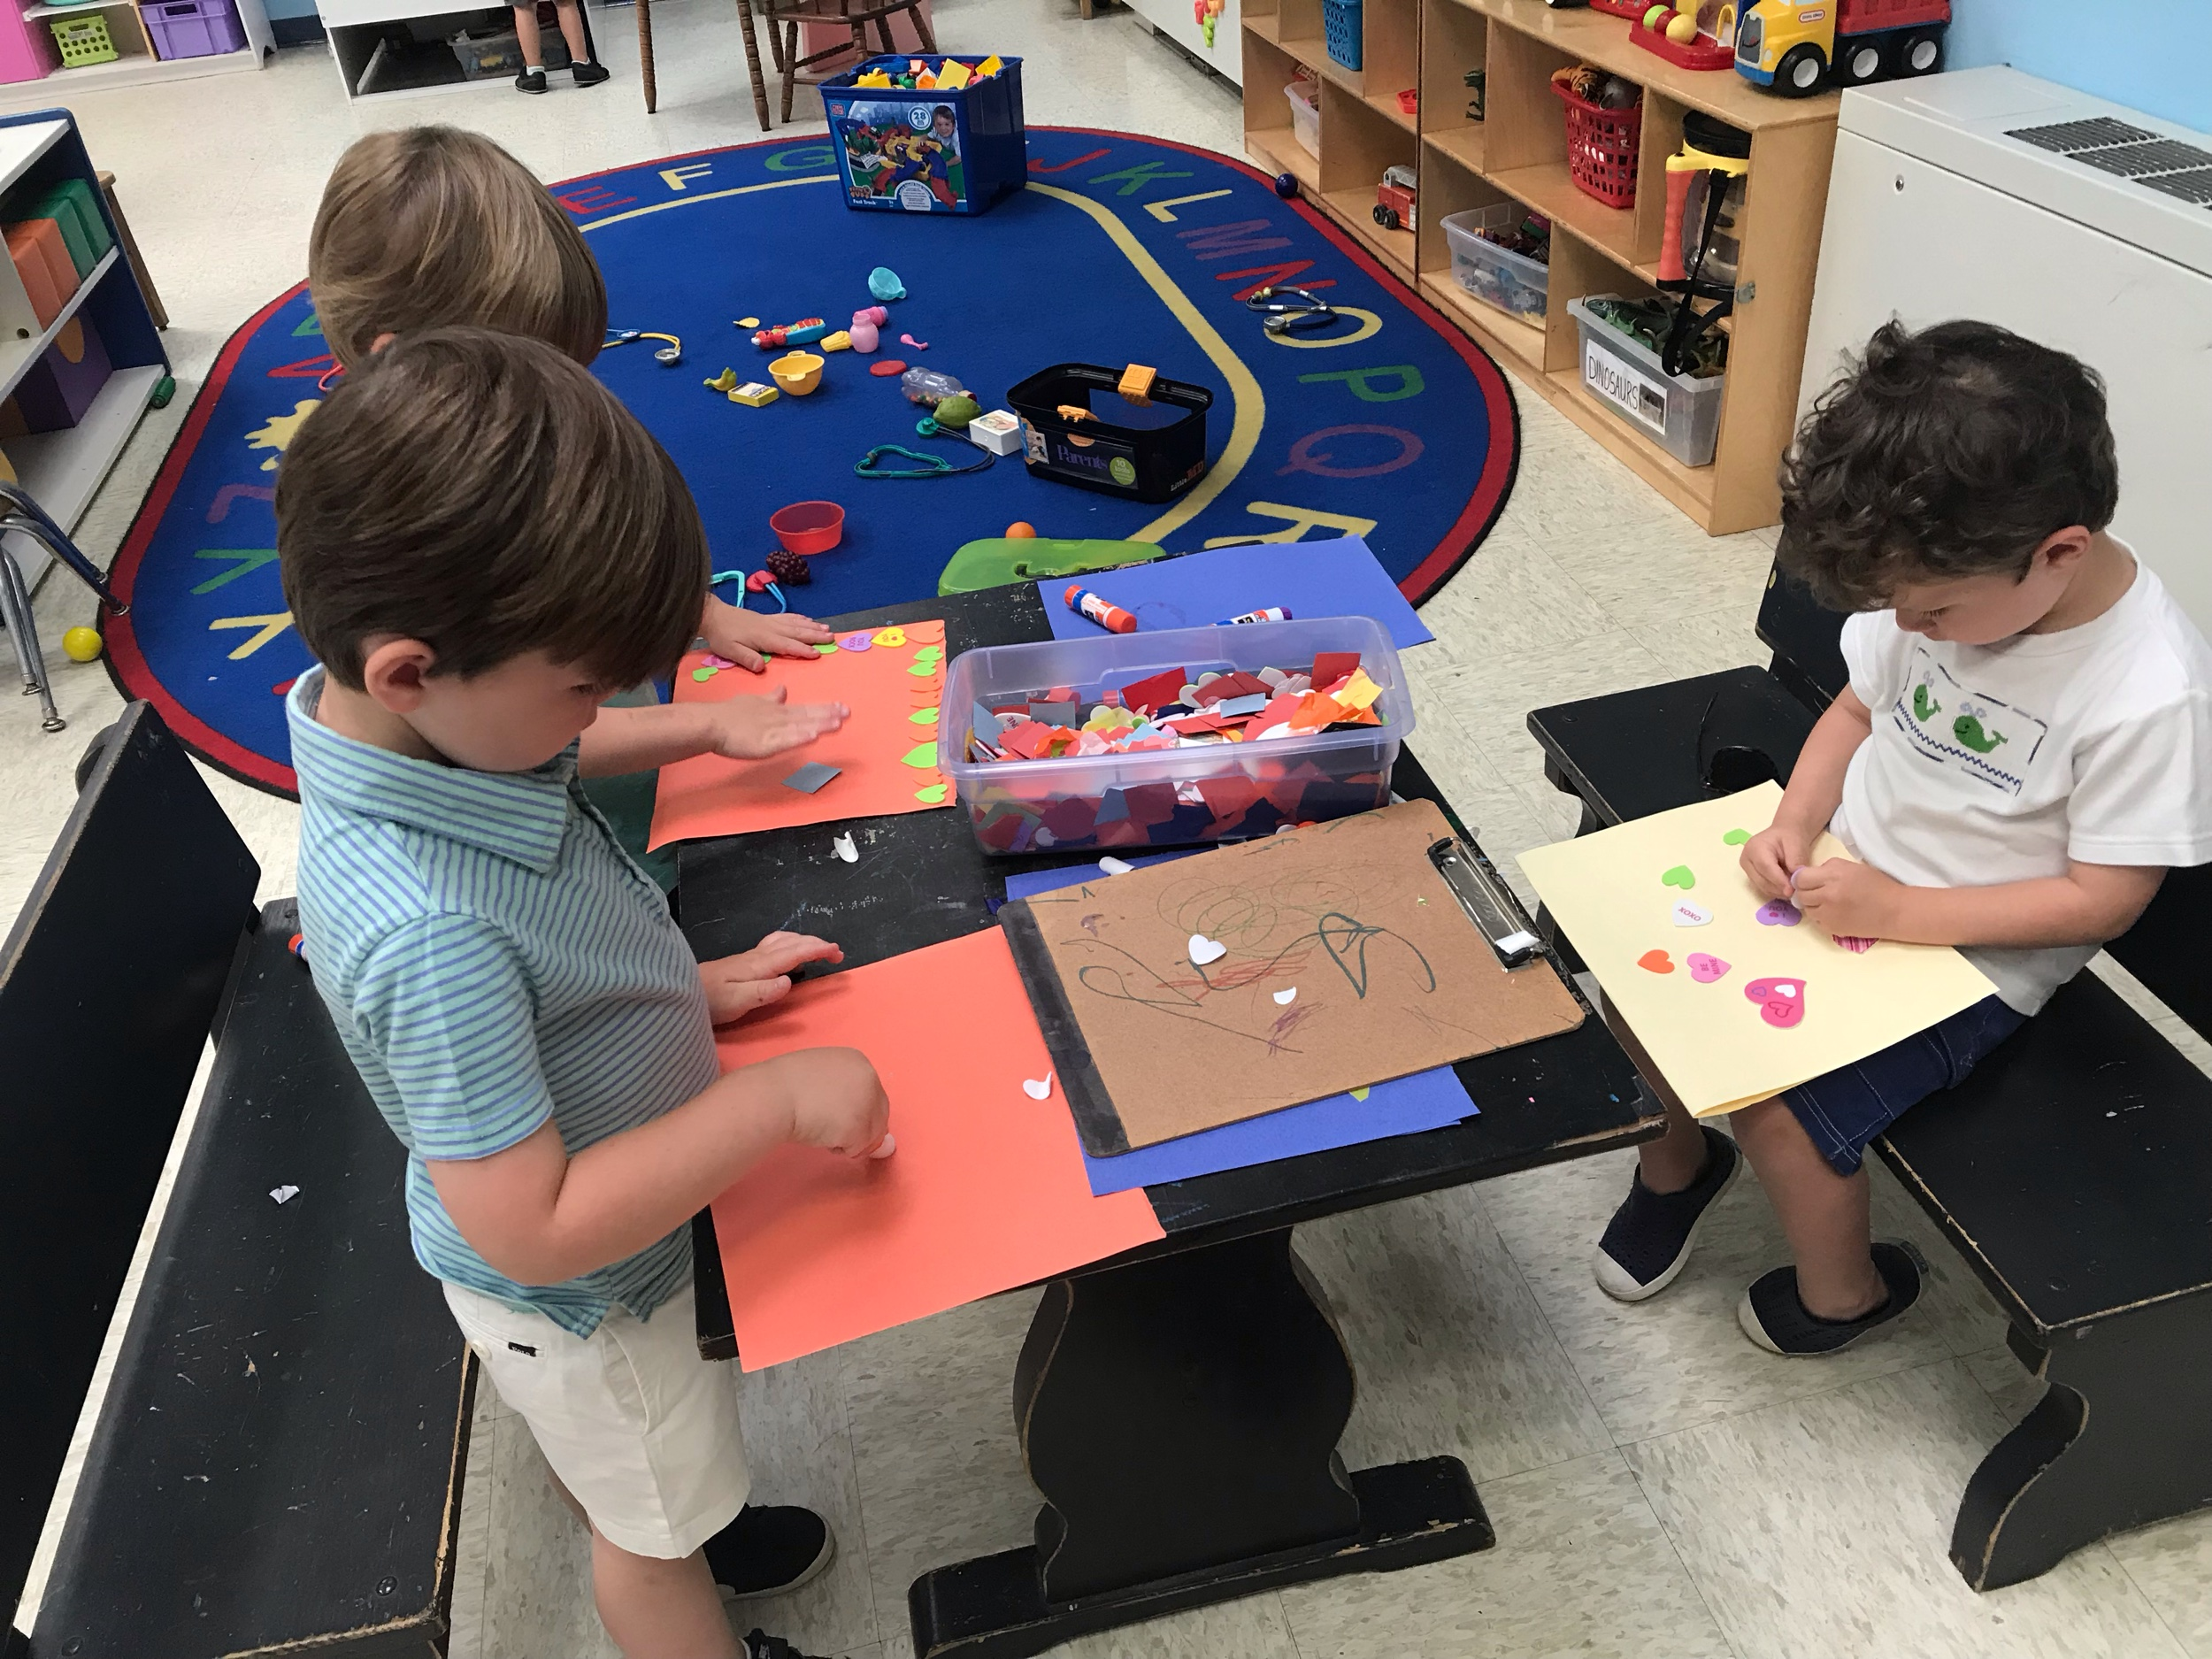 Creating a masterpiece with paper and glue sticks!